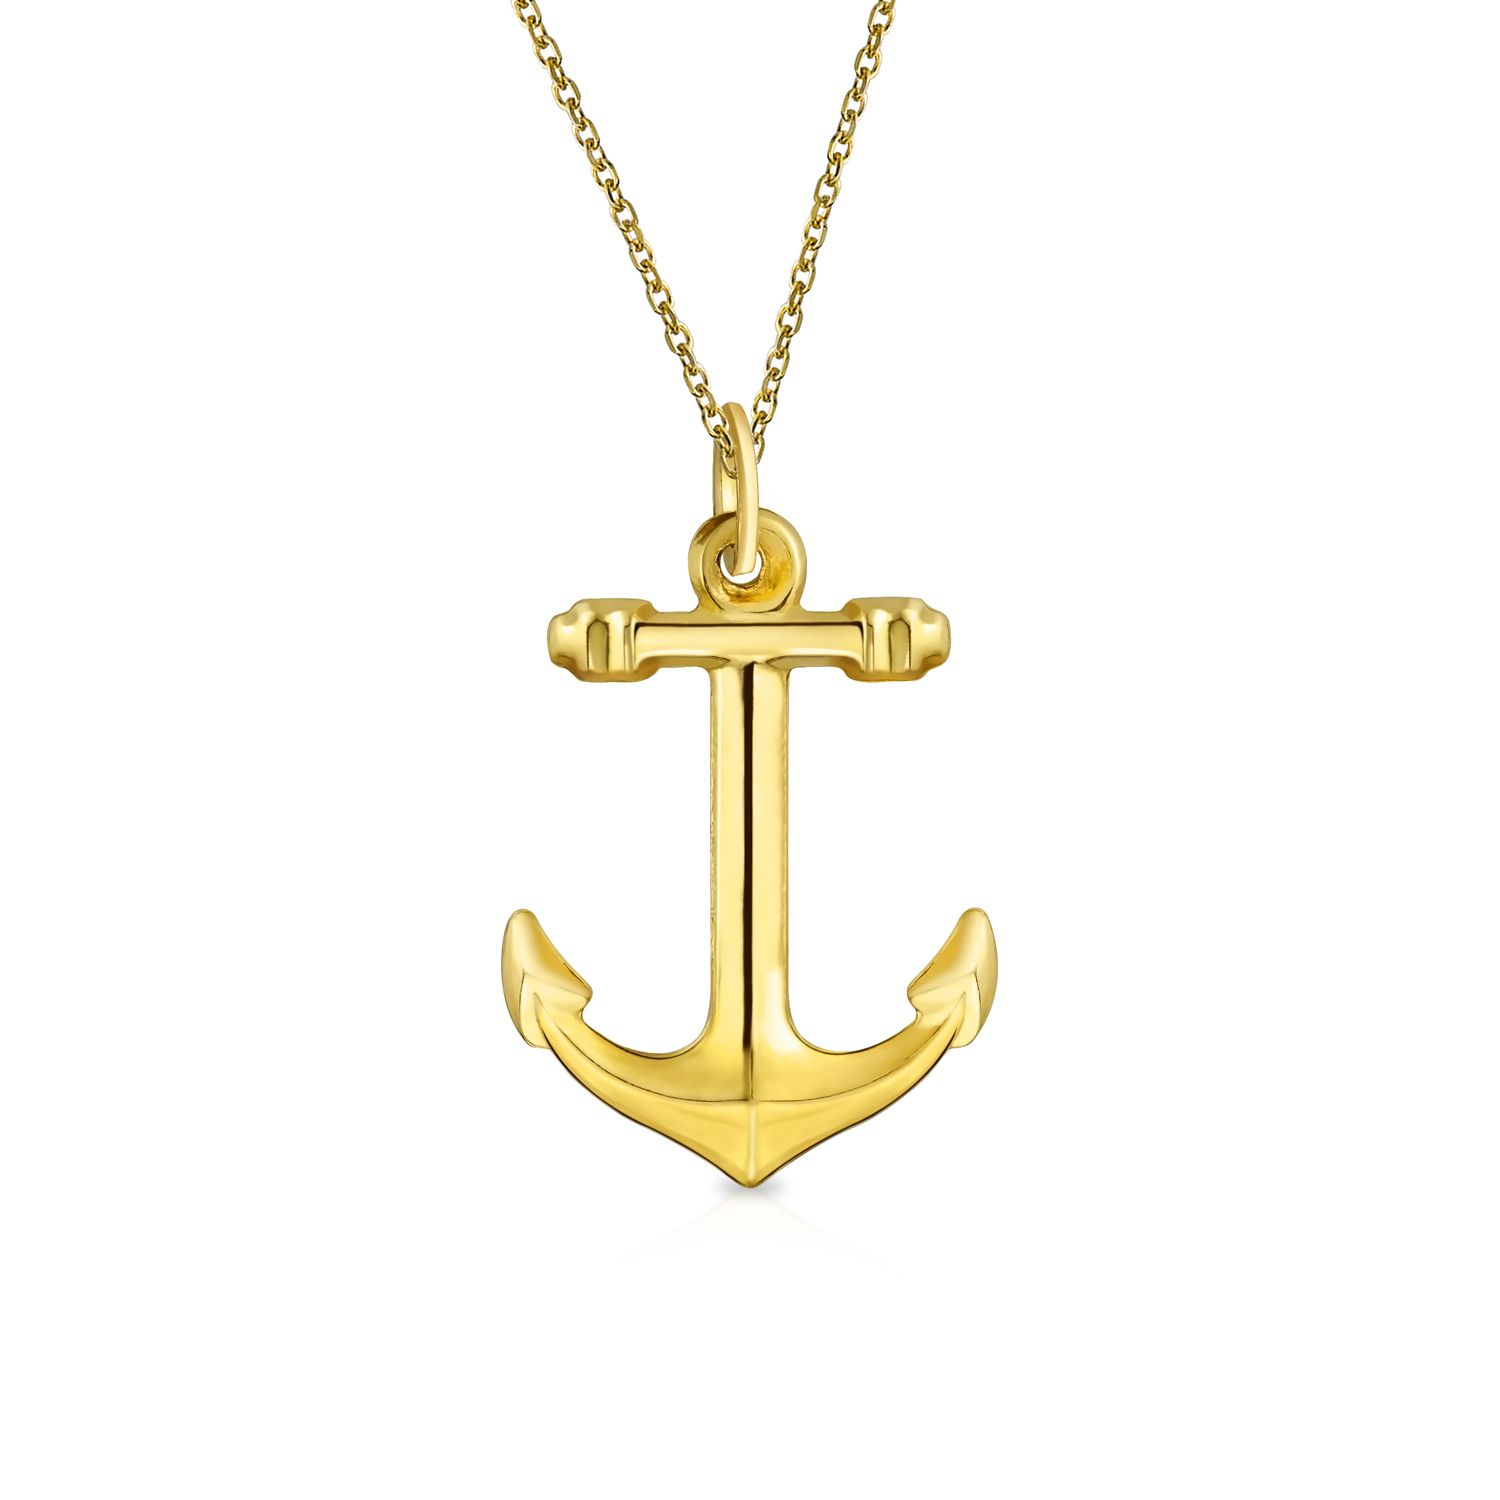 14k Yellow Gold Polished Anchor Charm or Pendant